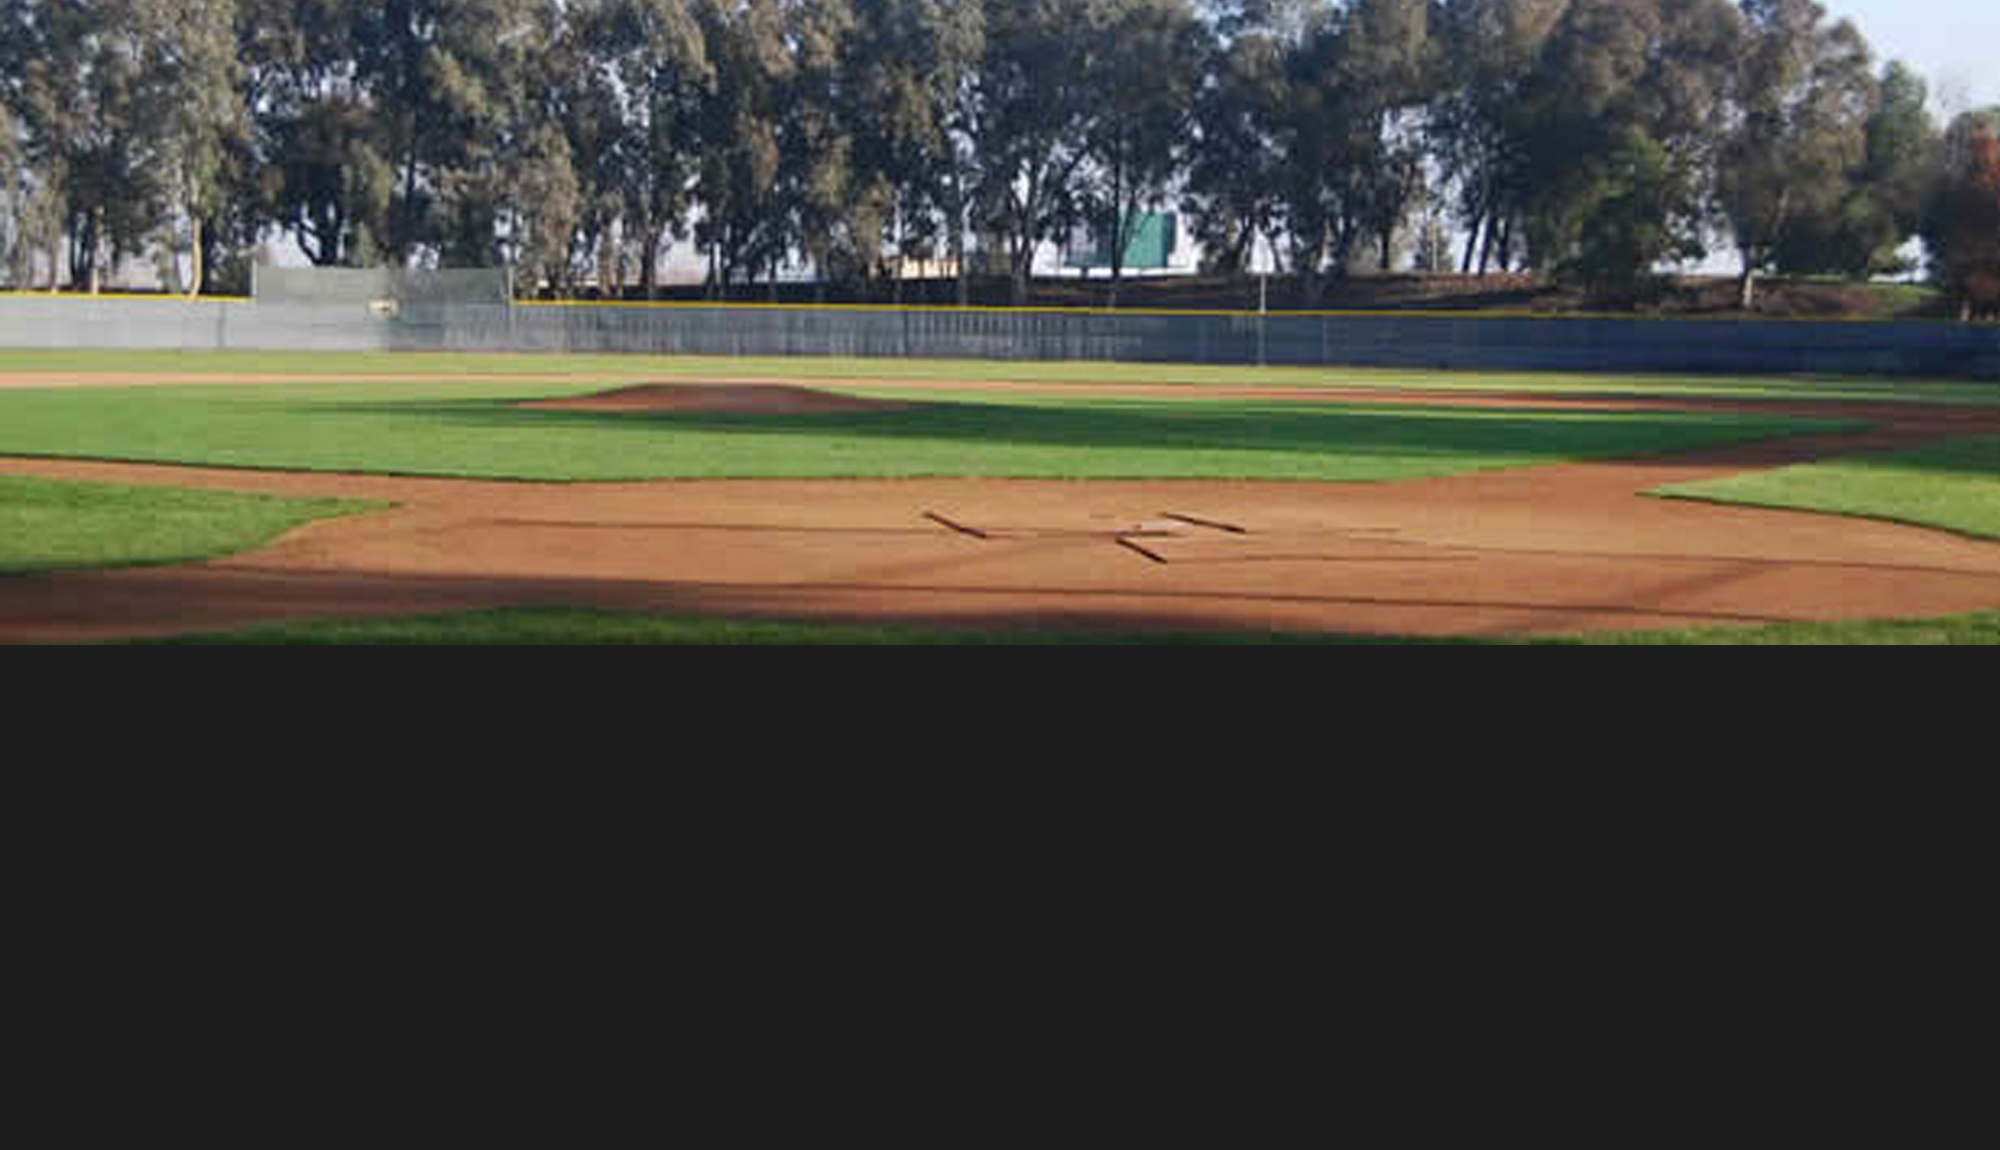 2018 Norcal Prospect Showcase - Contact | Perfect Game Baseball